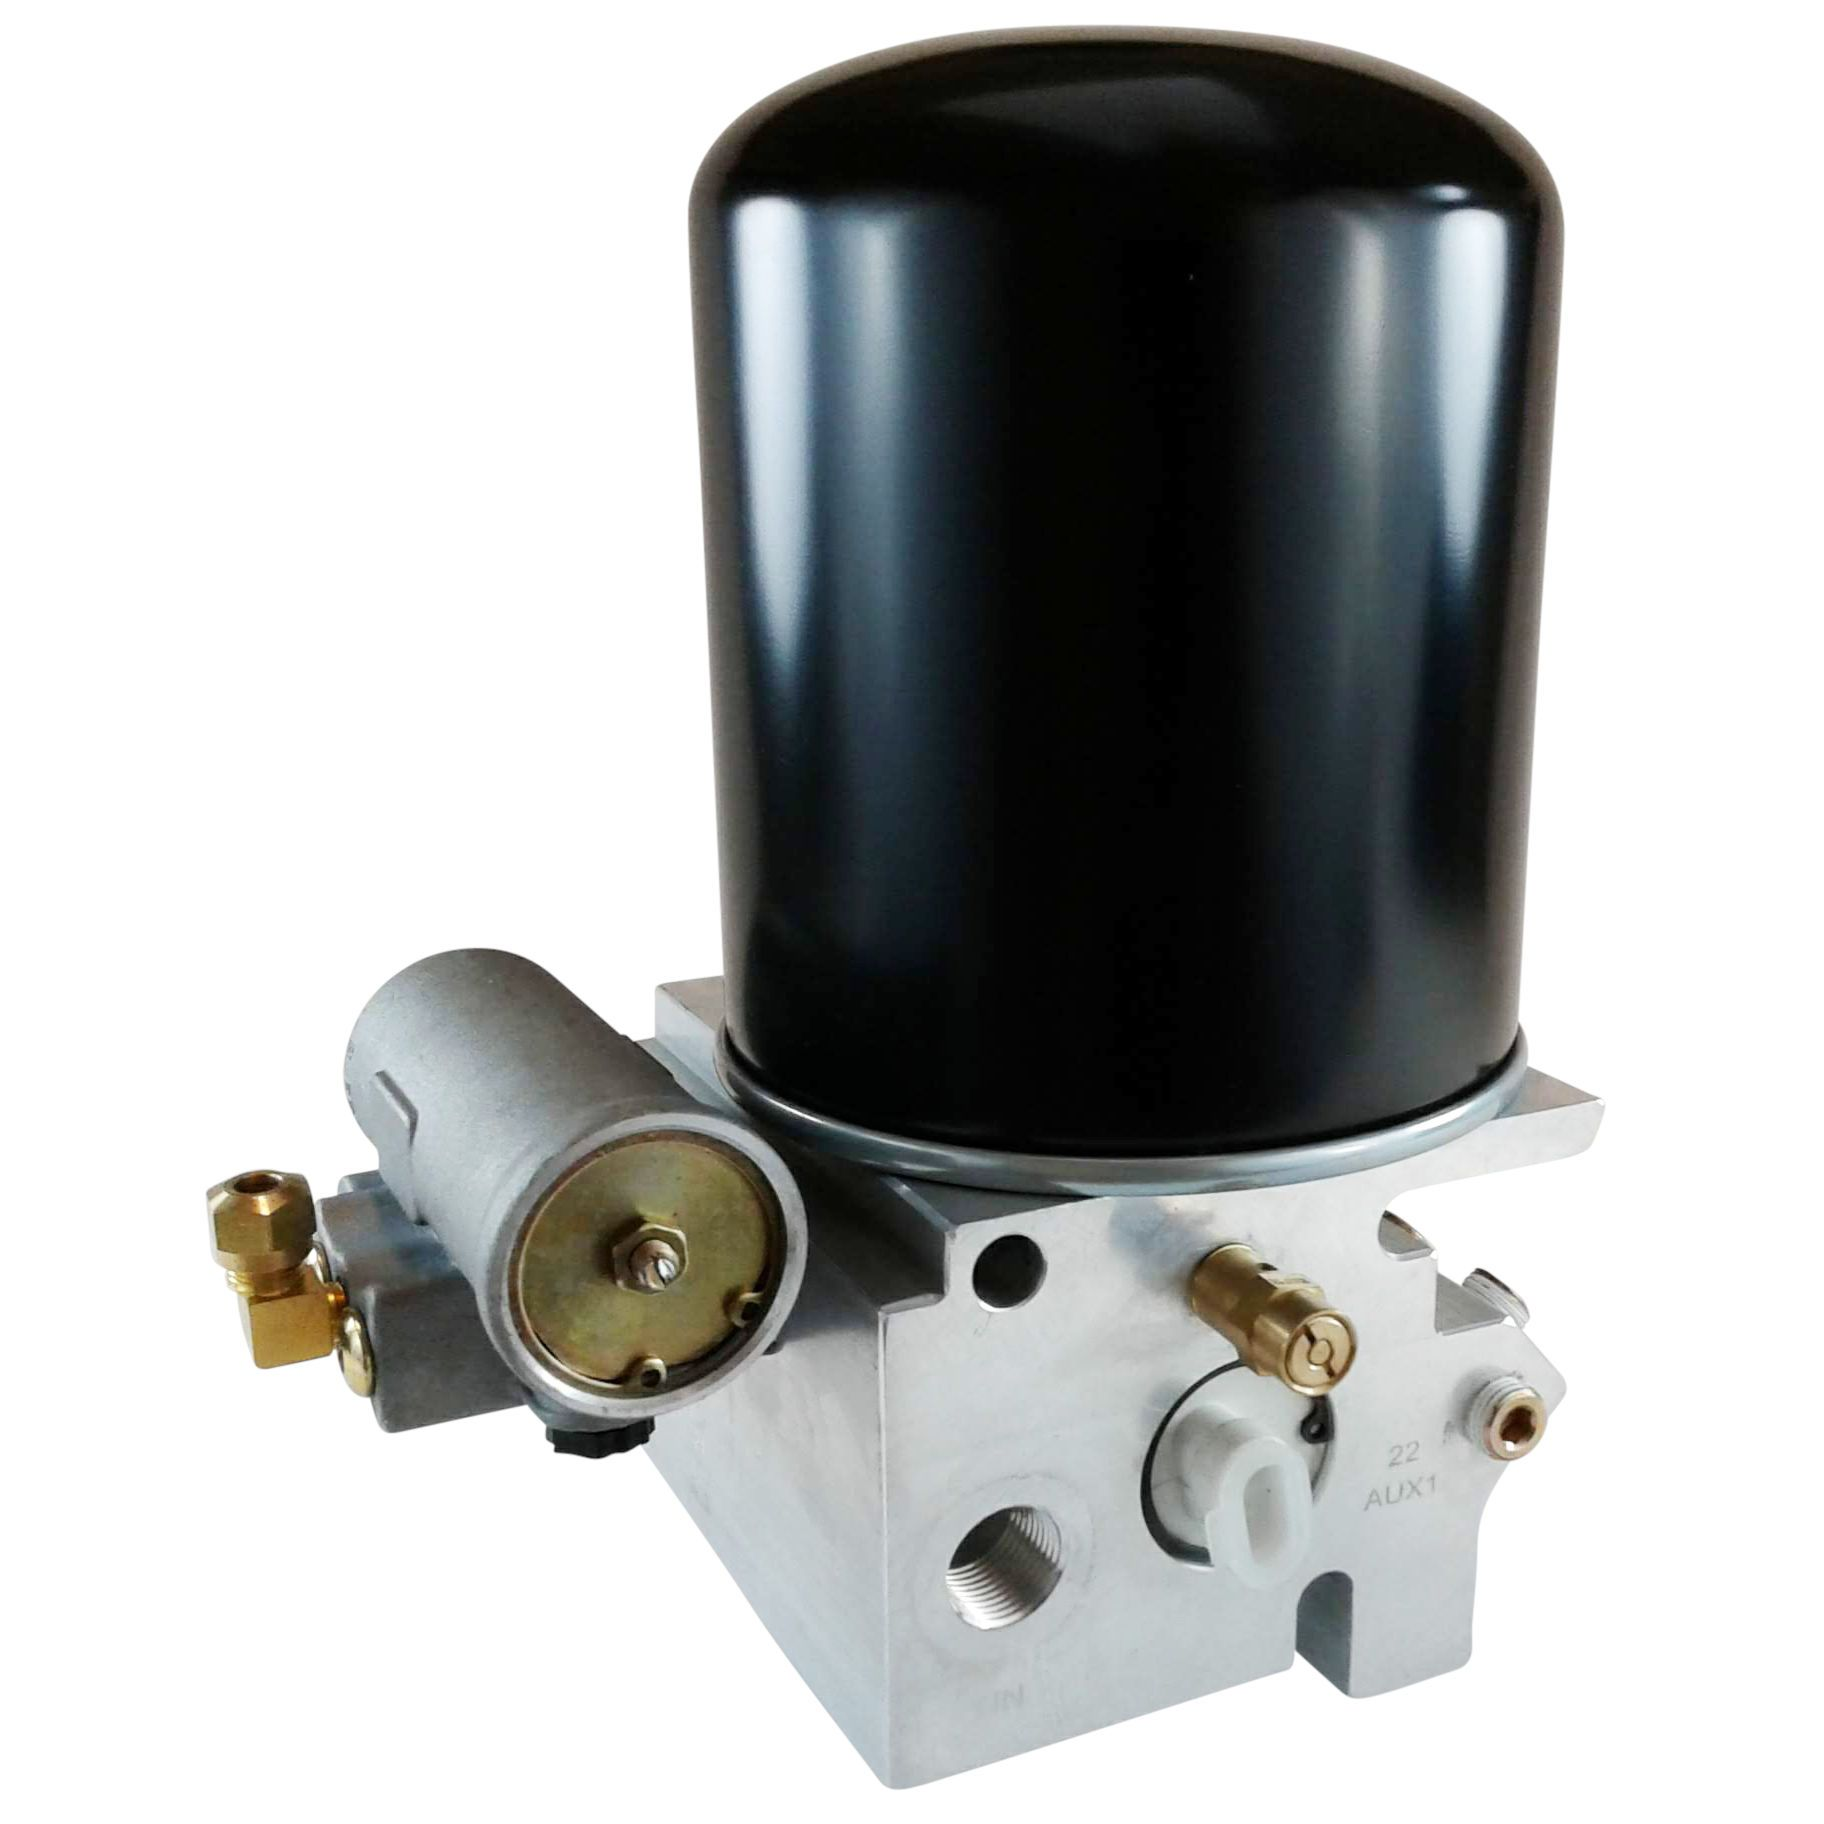 Replacement for Component Specialties SP6PMNTB